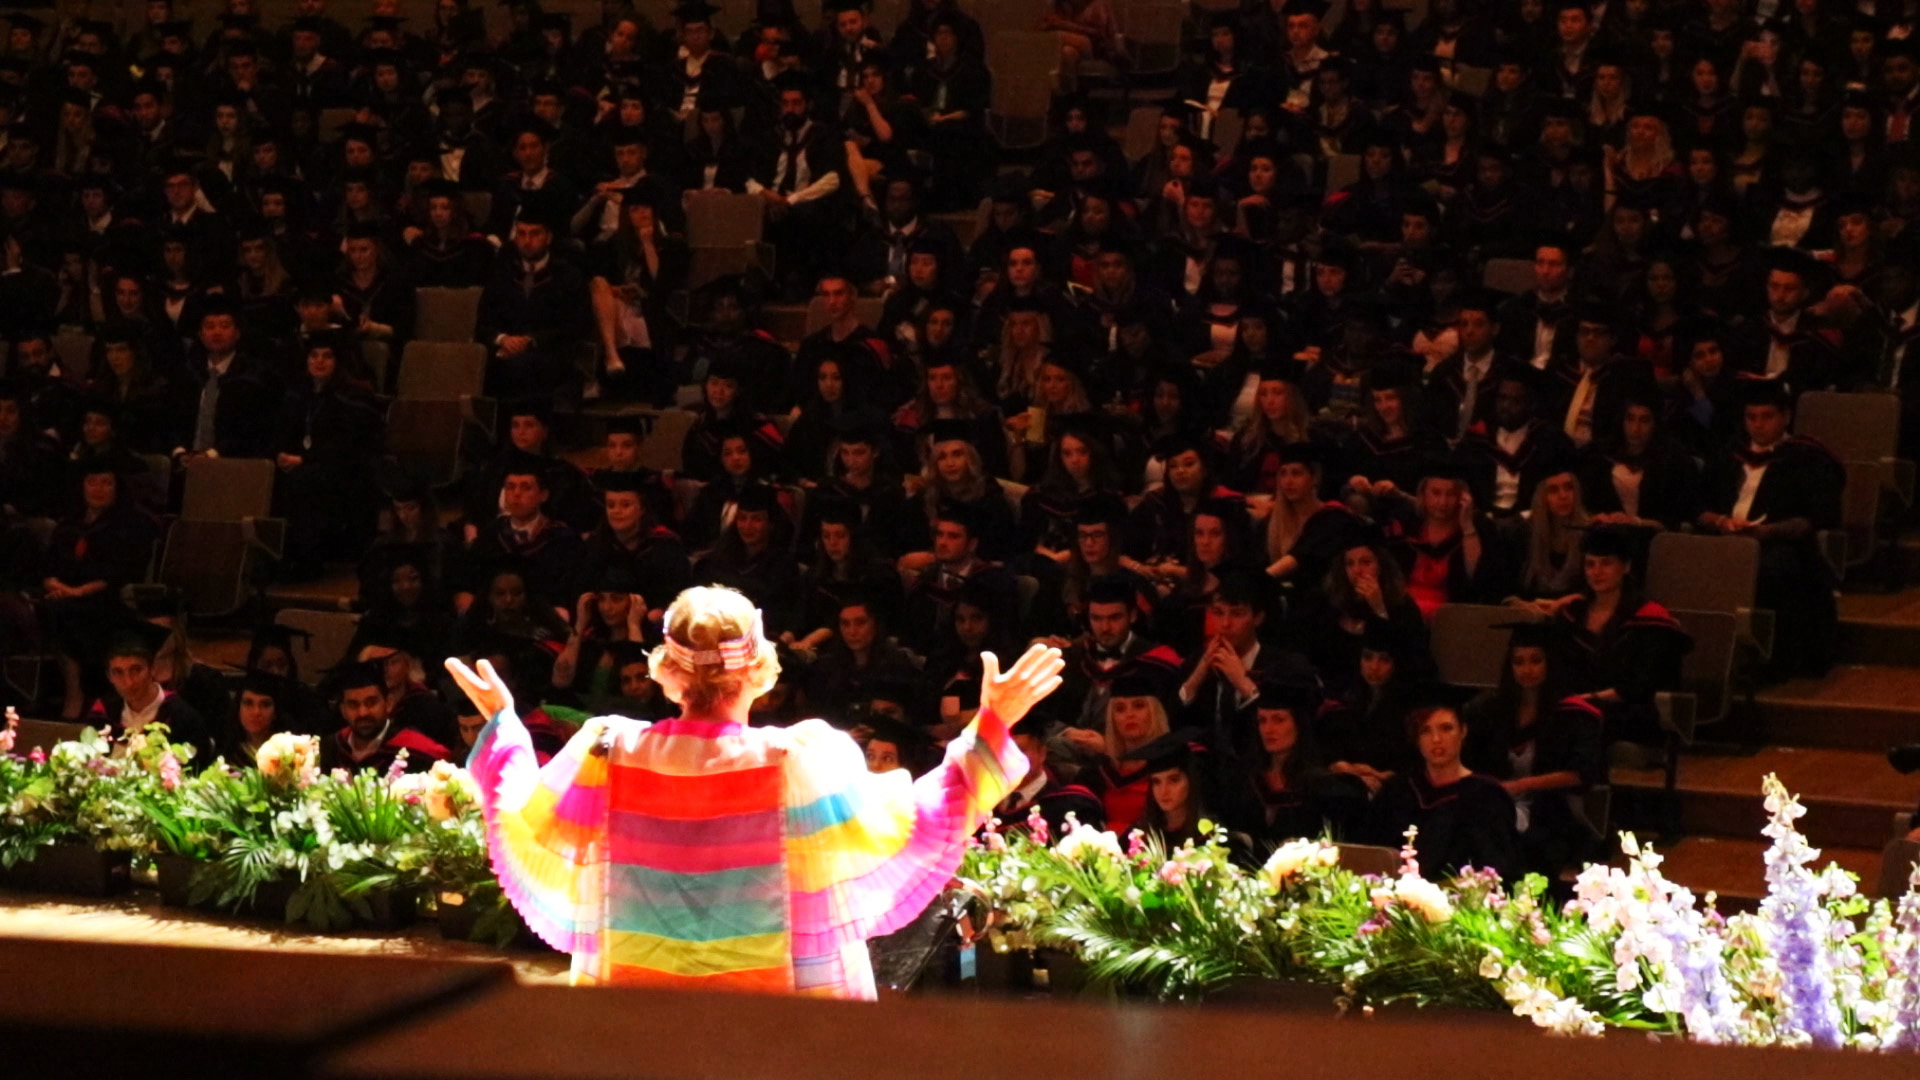 Grayson Perry on stage in his new robes at the UAL Graduation ceremonies